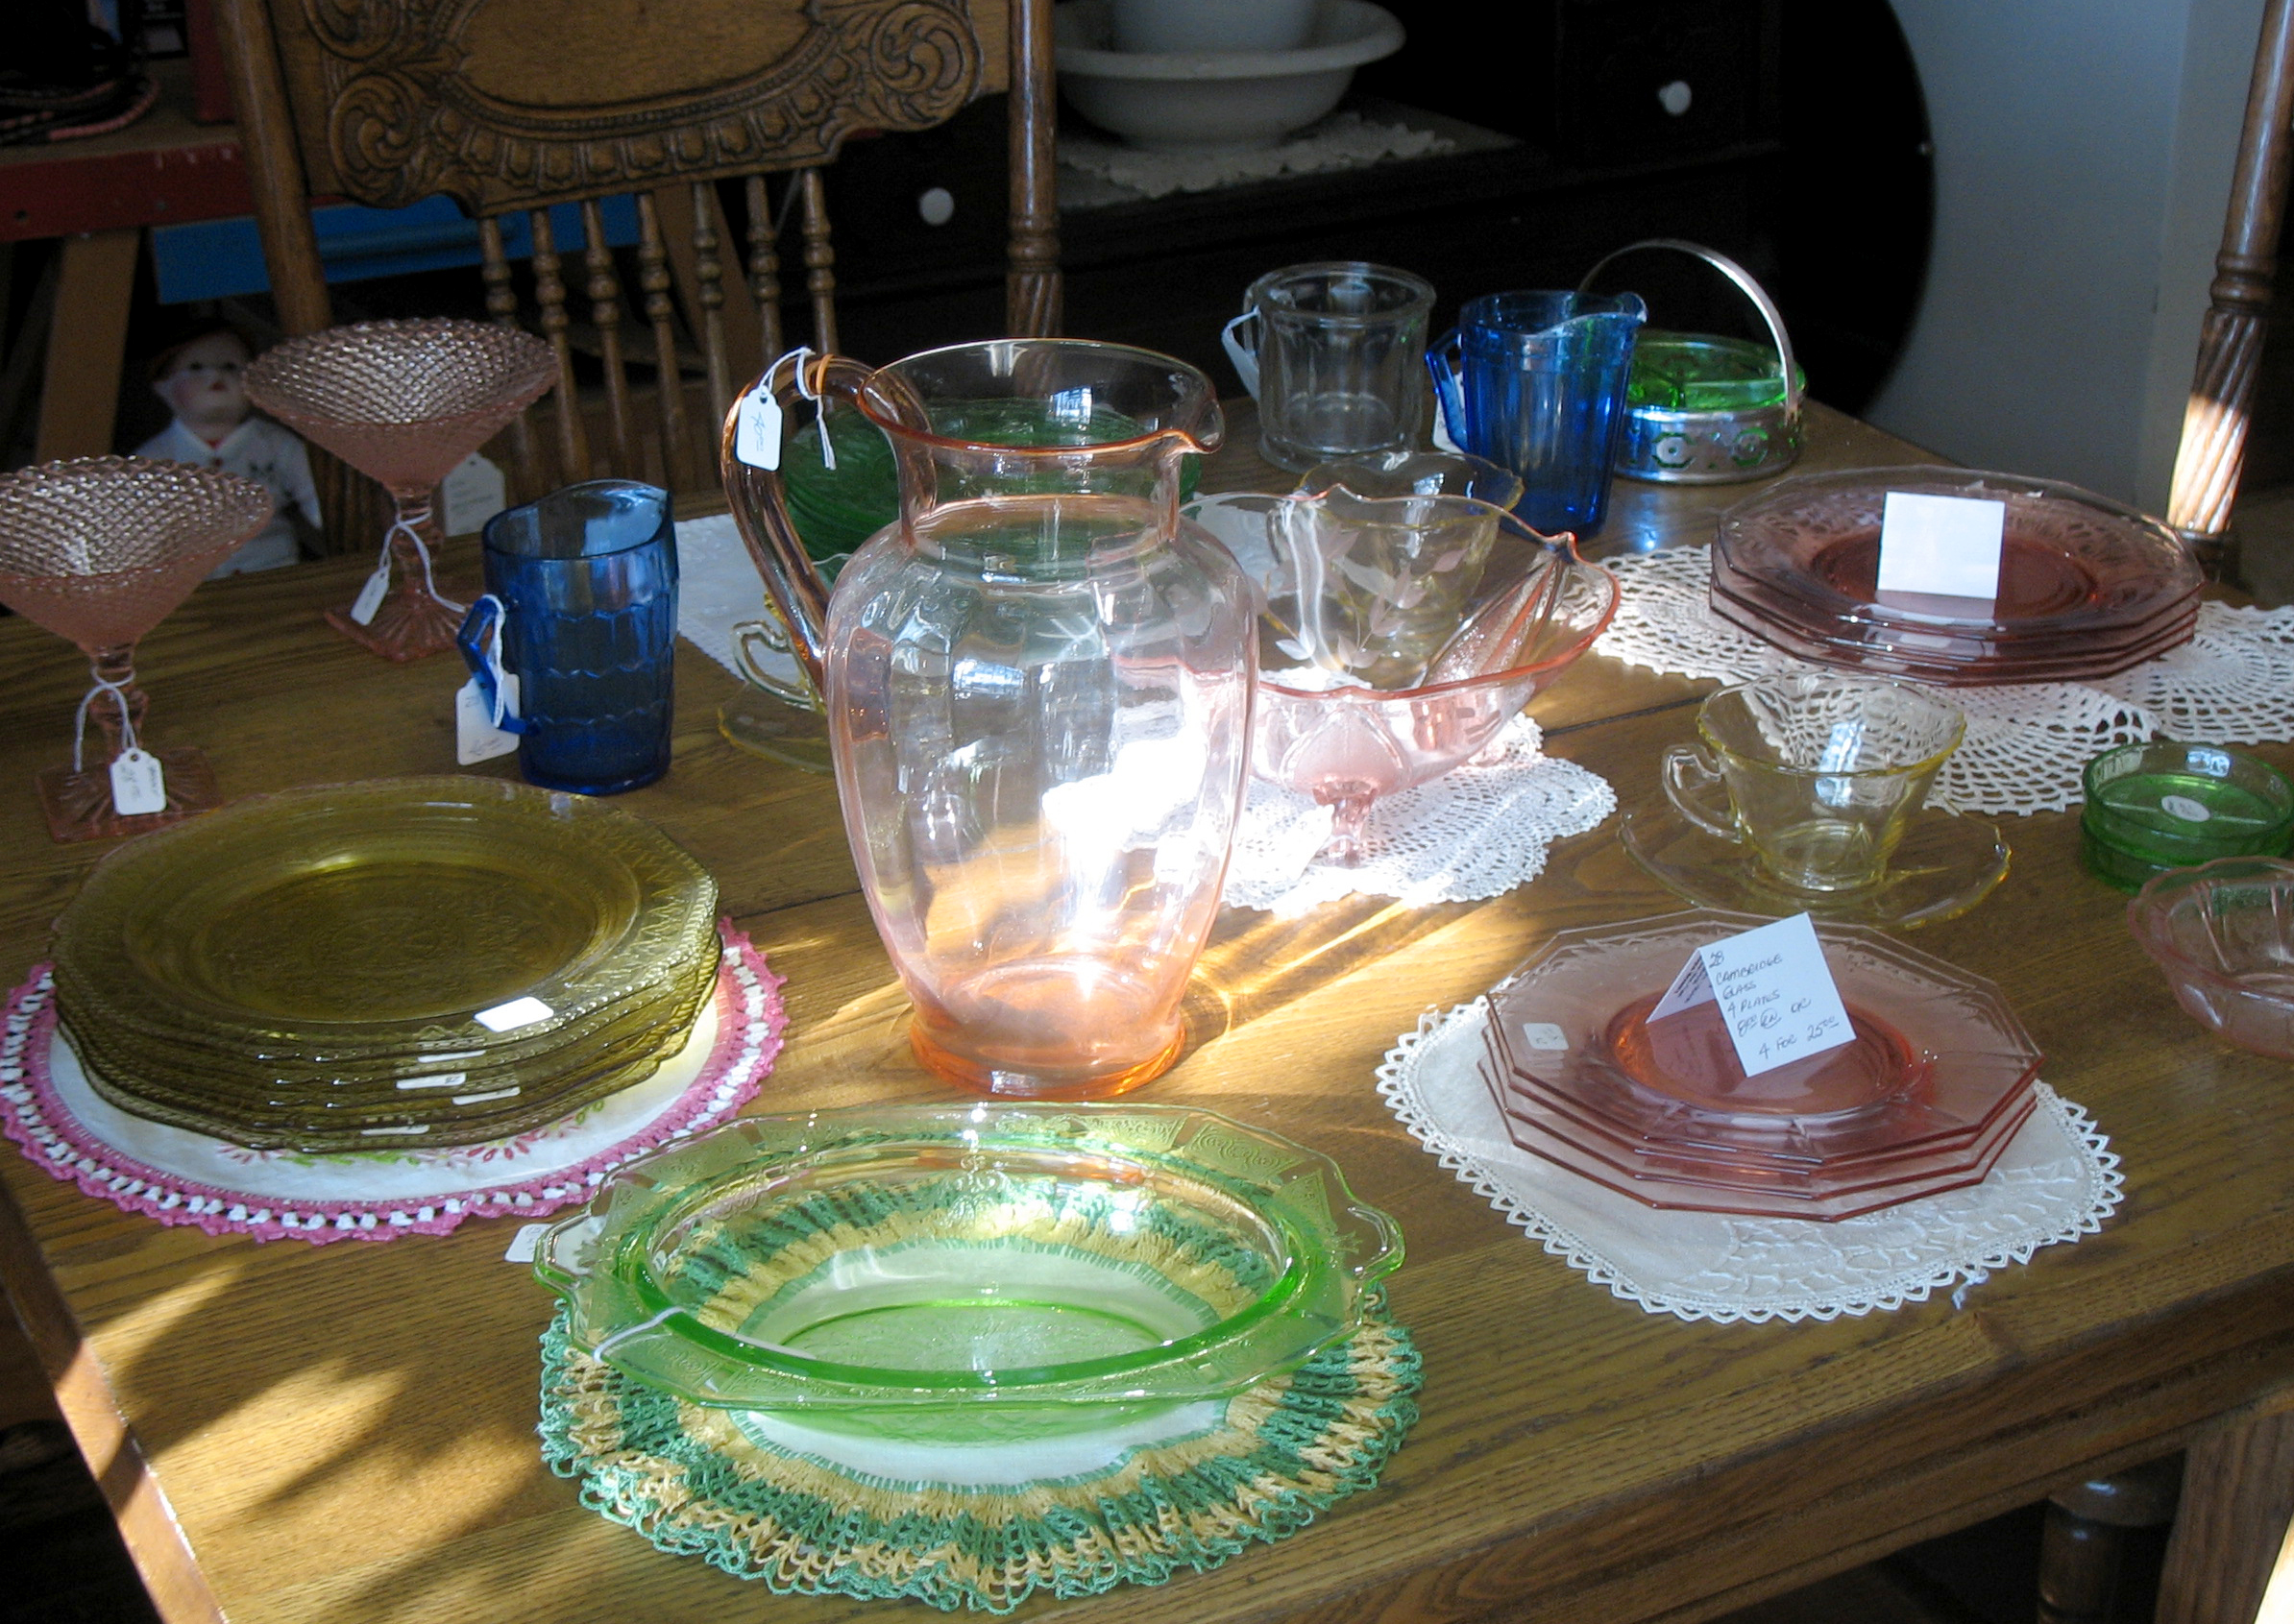 Depression Glass pieces pictured above include: Pink Cambridge Glass Plates, Cobalt Aurora Creamer, Amber Patrician Luncheon Plates, Pink Cherry Blossom Berry Bowl, Green Princess Oval Vegetable Bowl